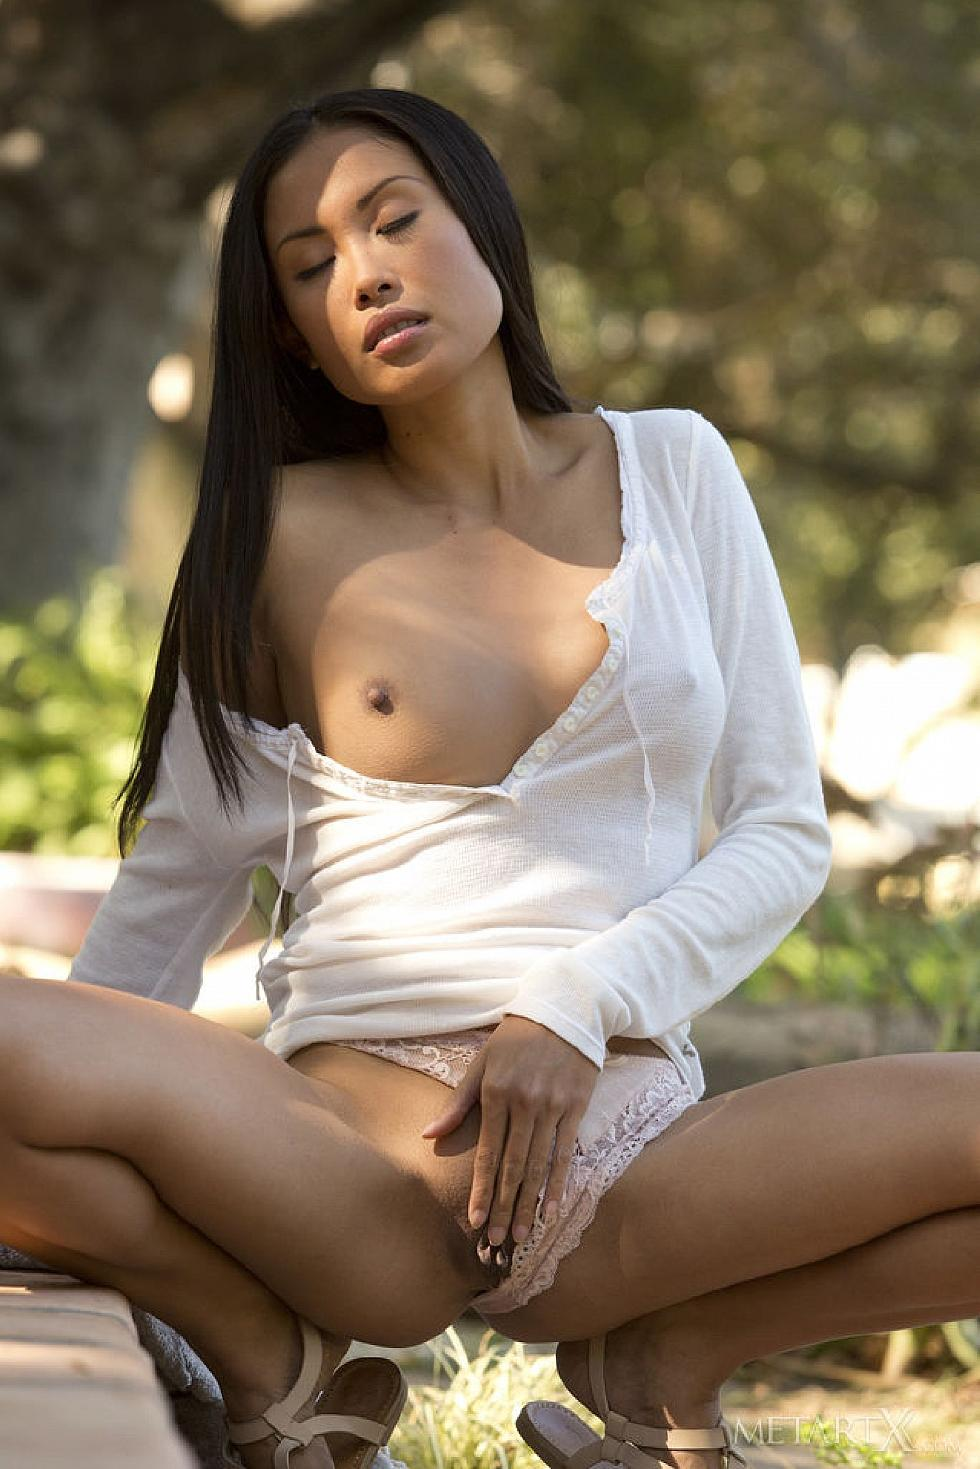 Sensual Asian named Davon Kim - 6